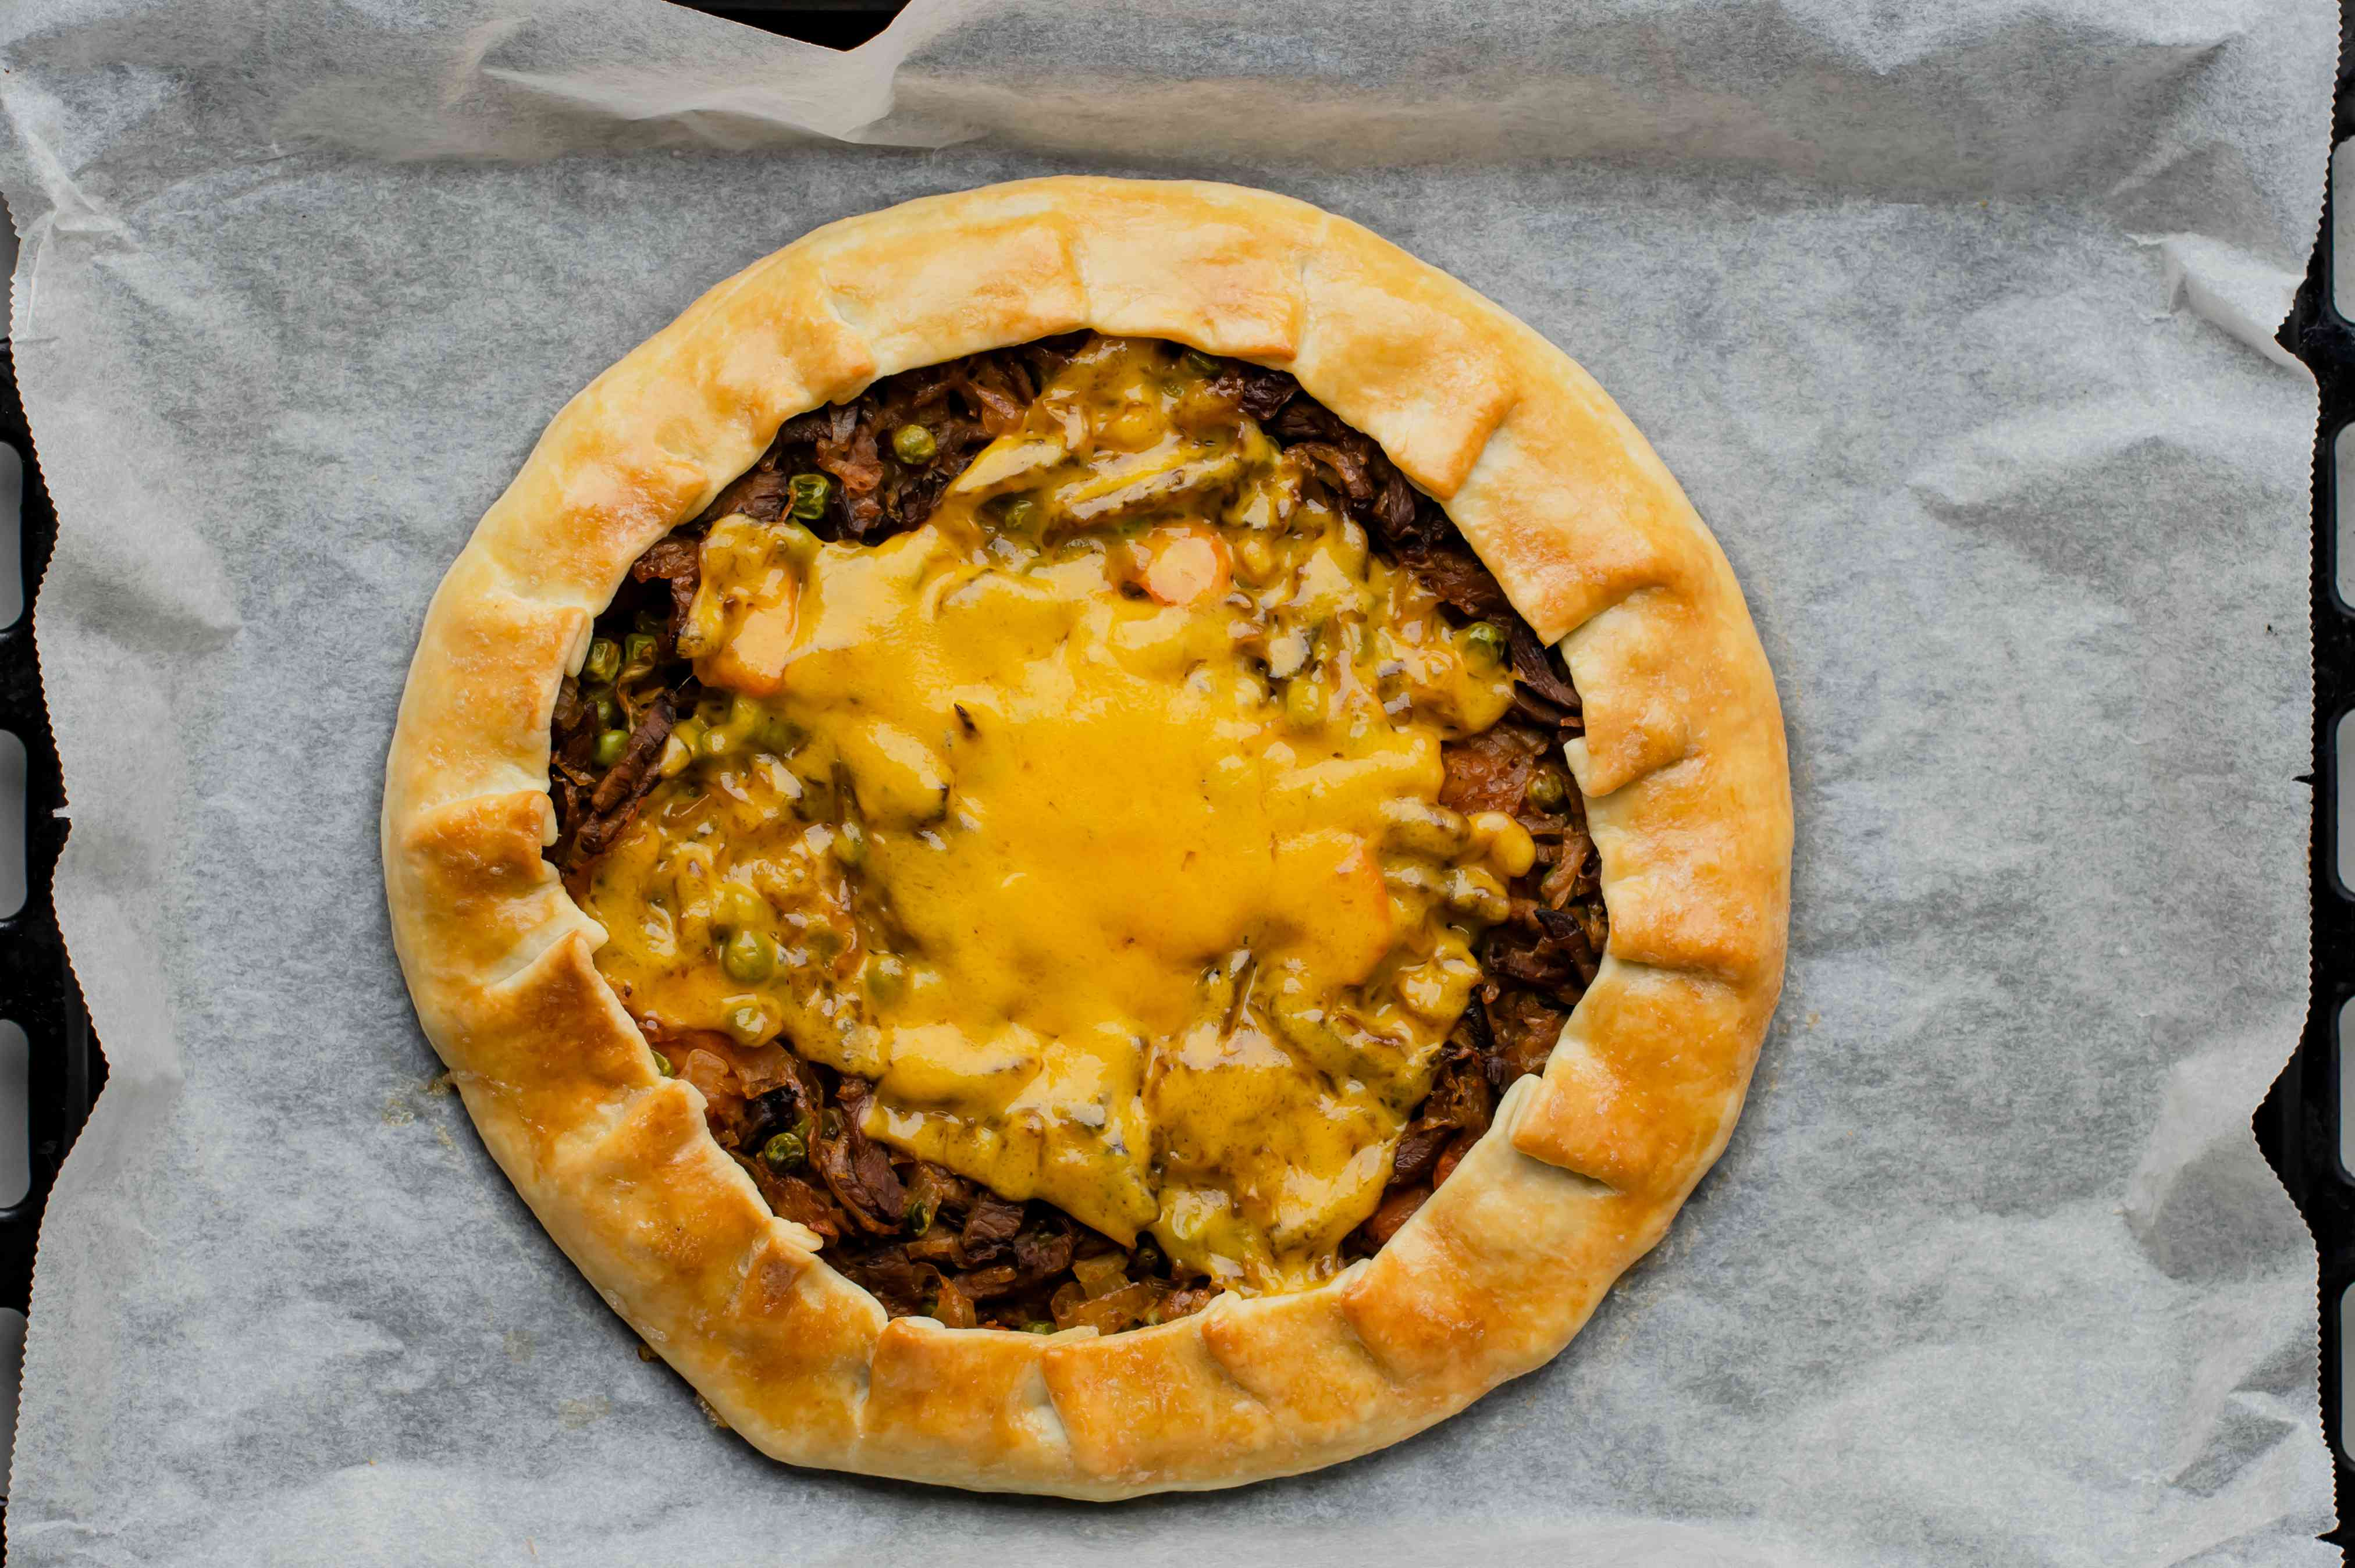 Top the pie with cheese